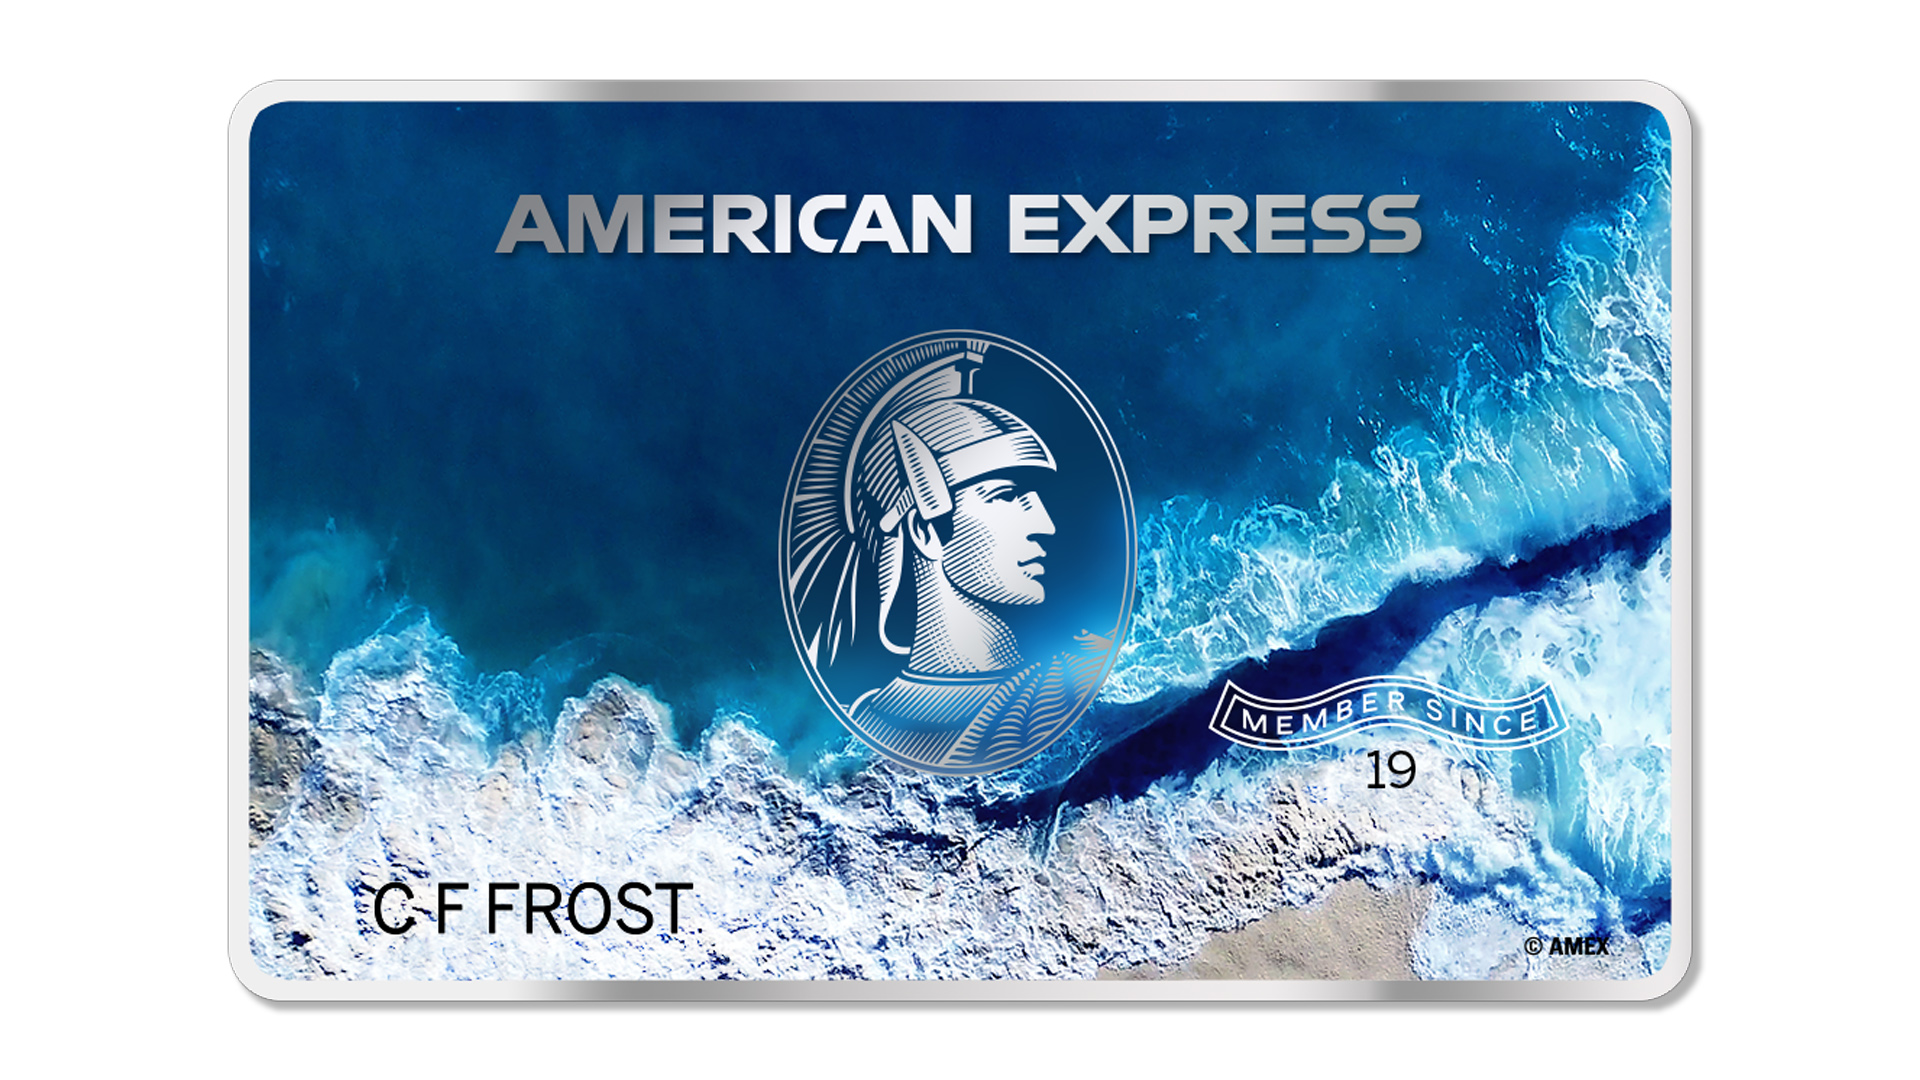 An American Express credit card made with recycled ocean plastic